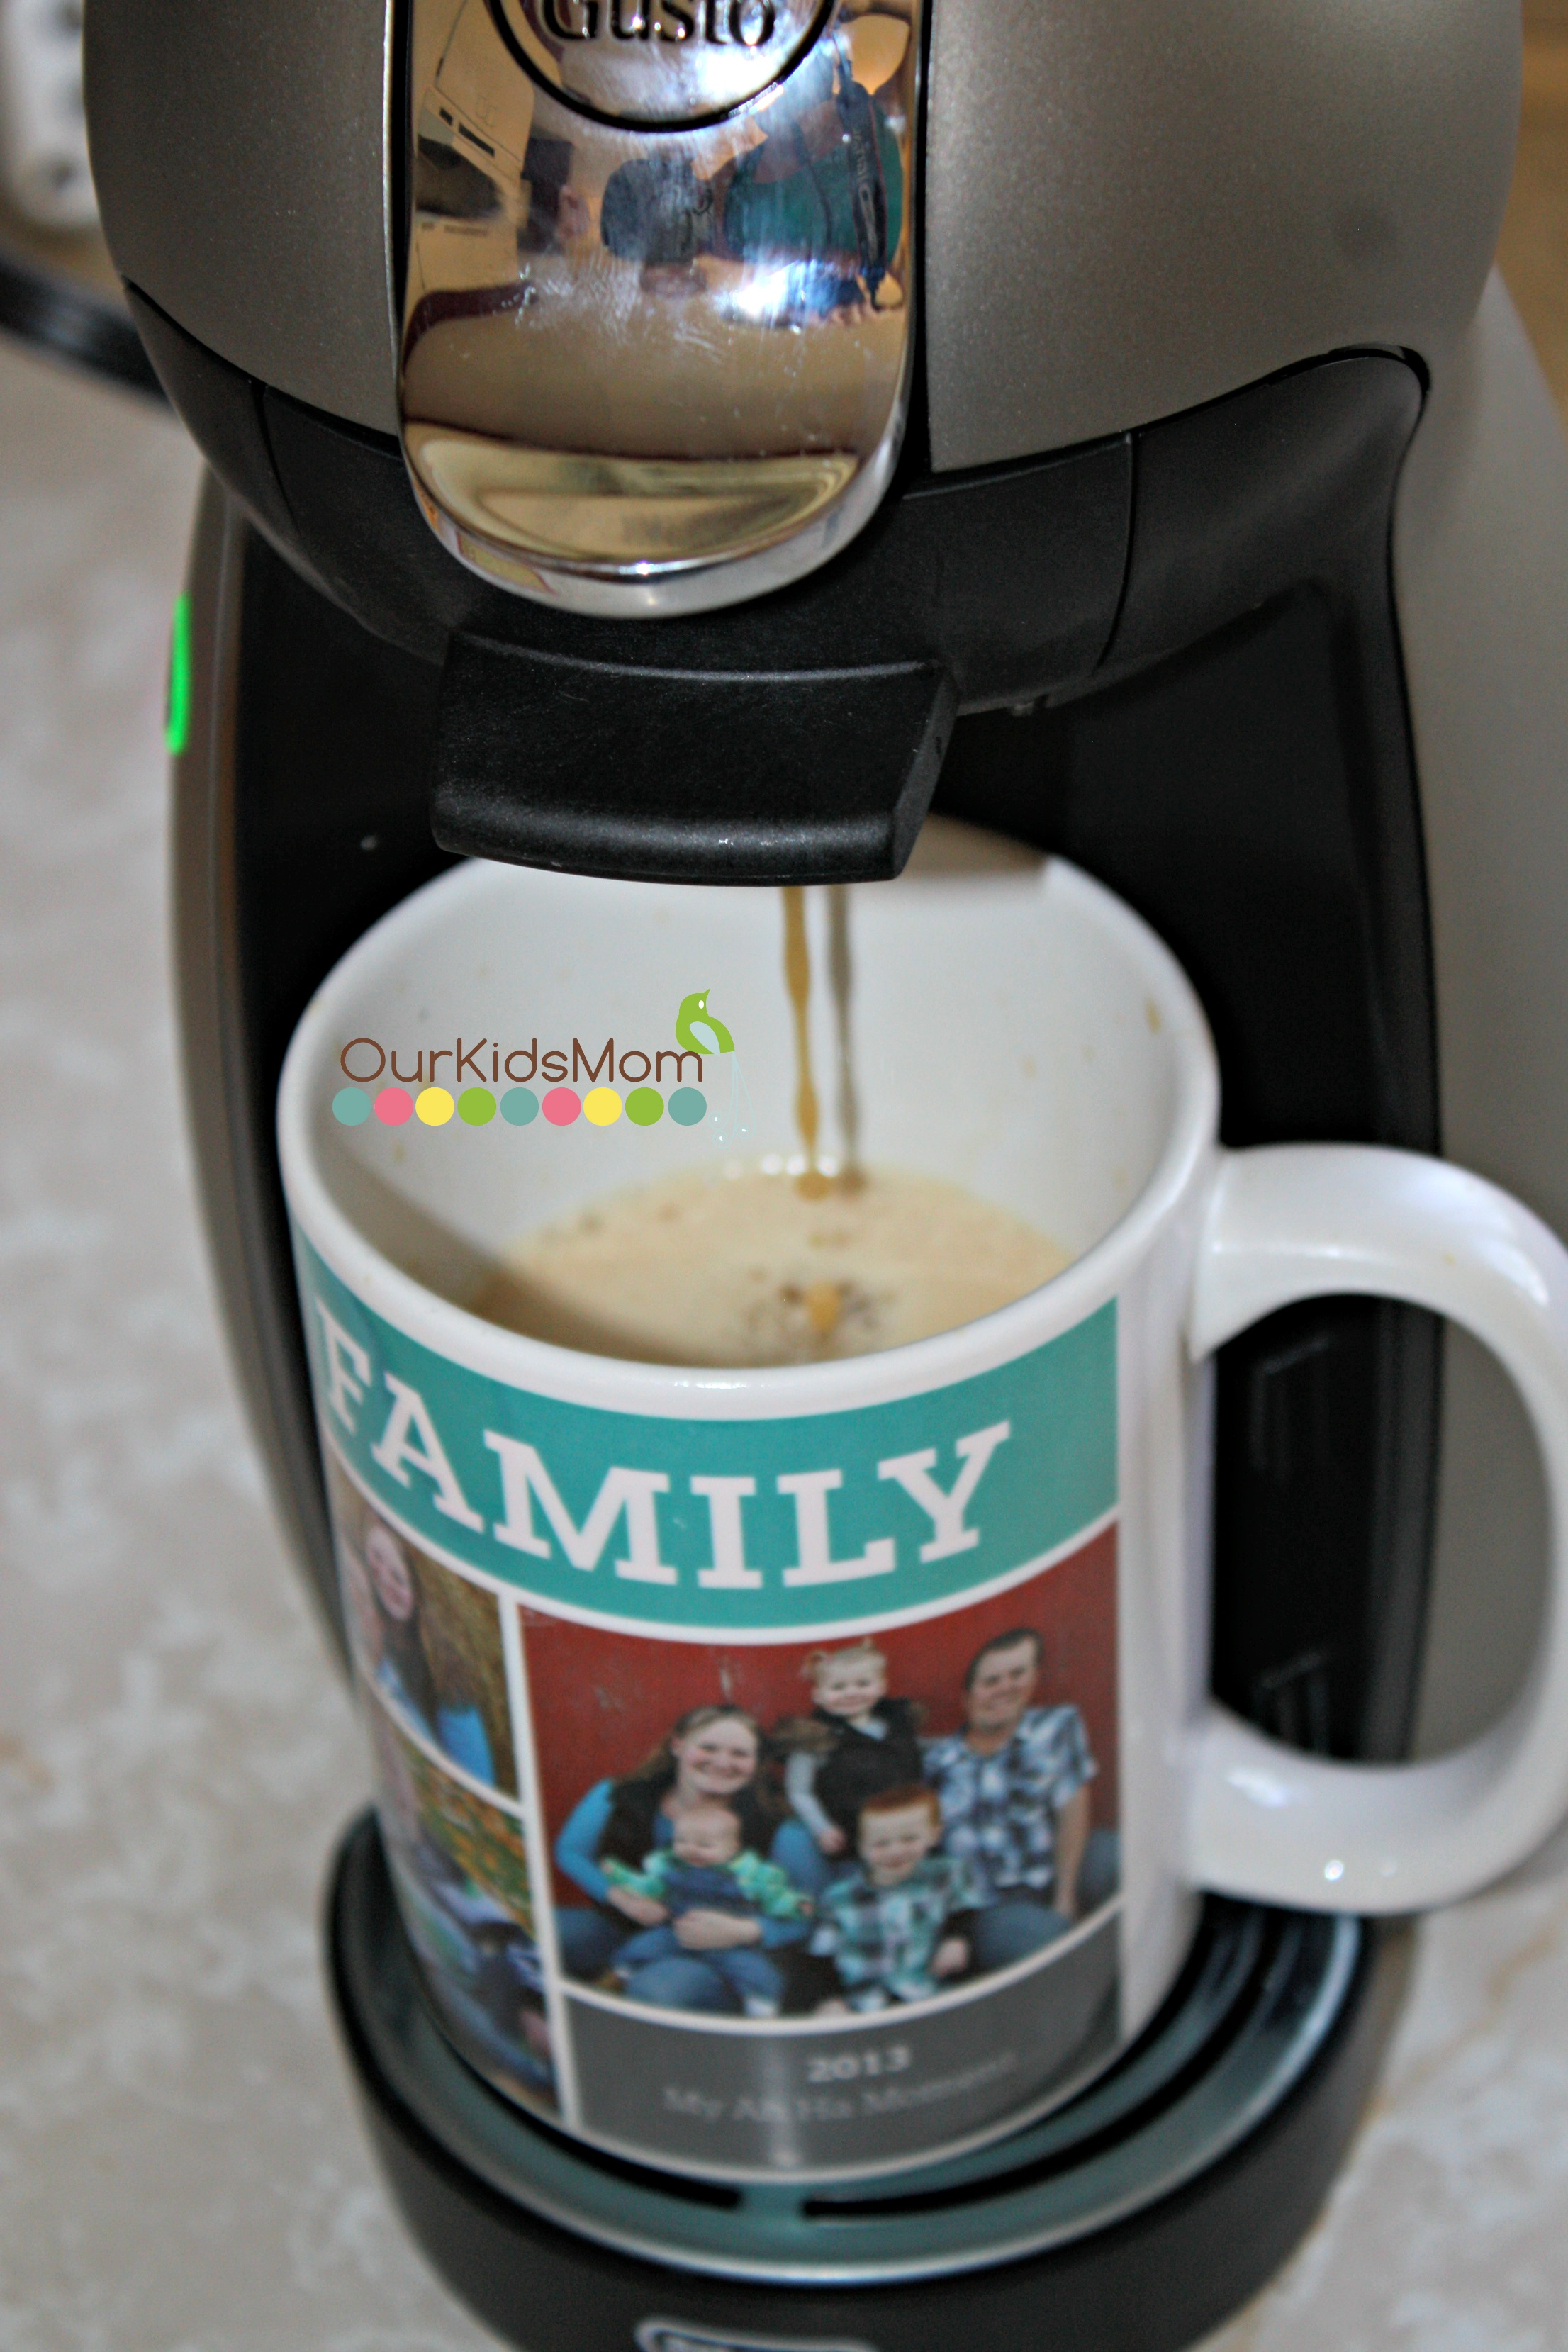 Great cup of coffee